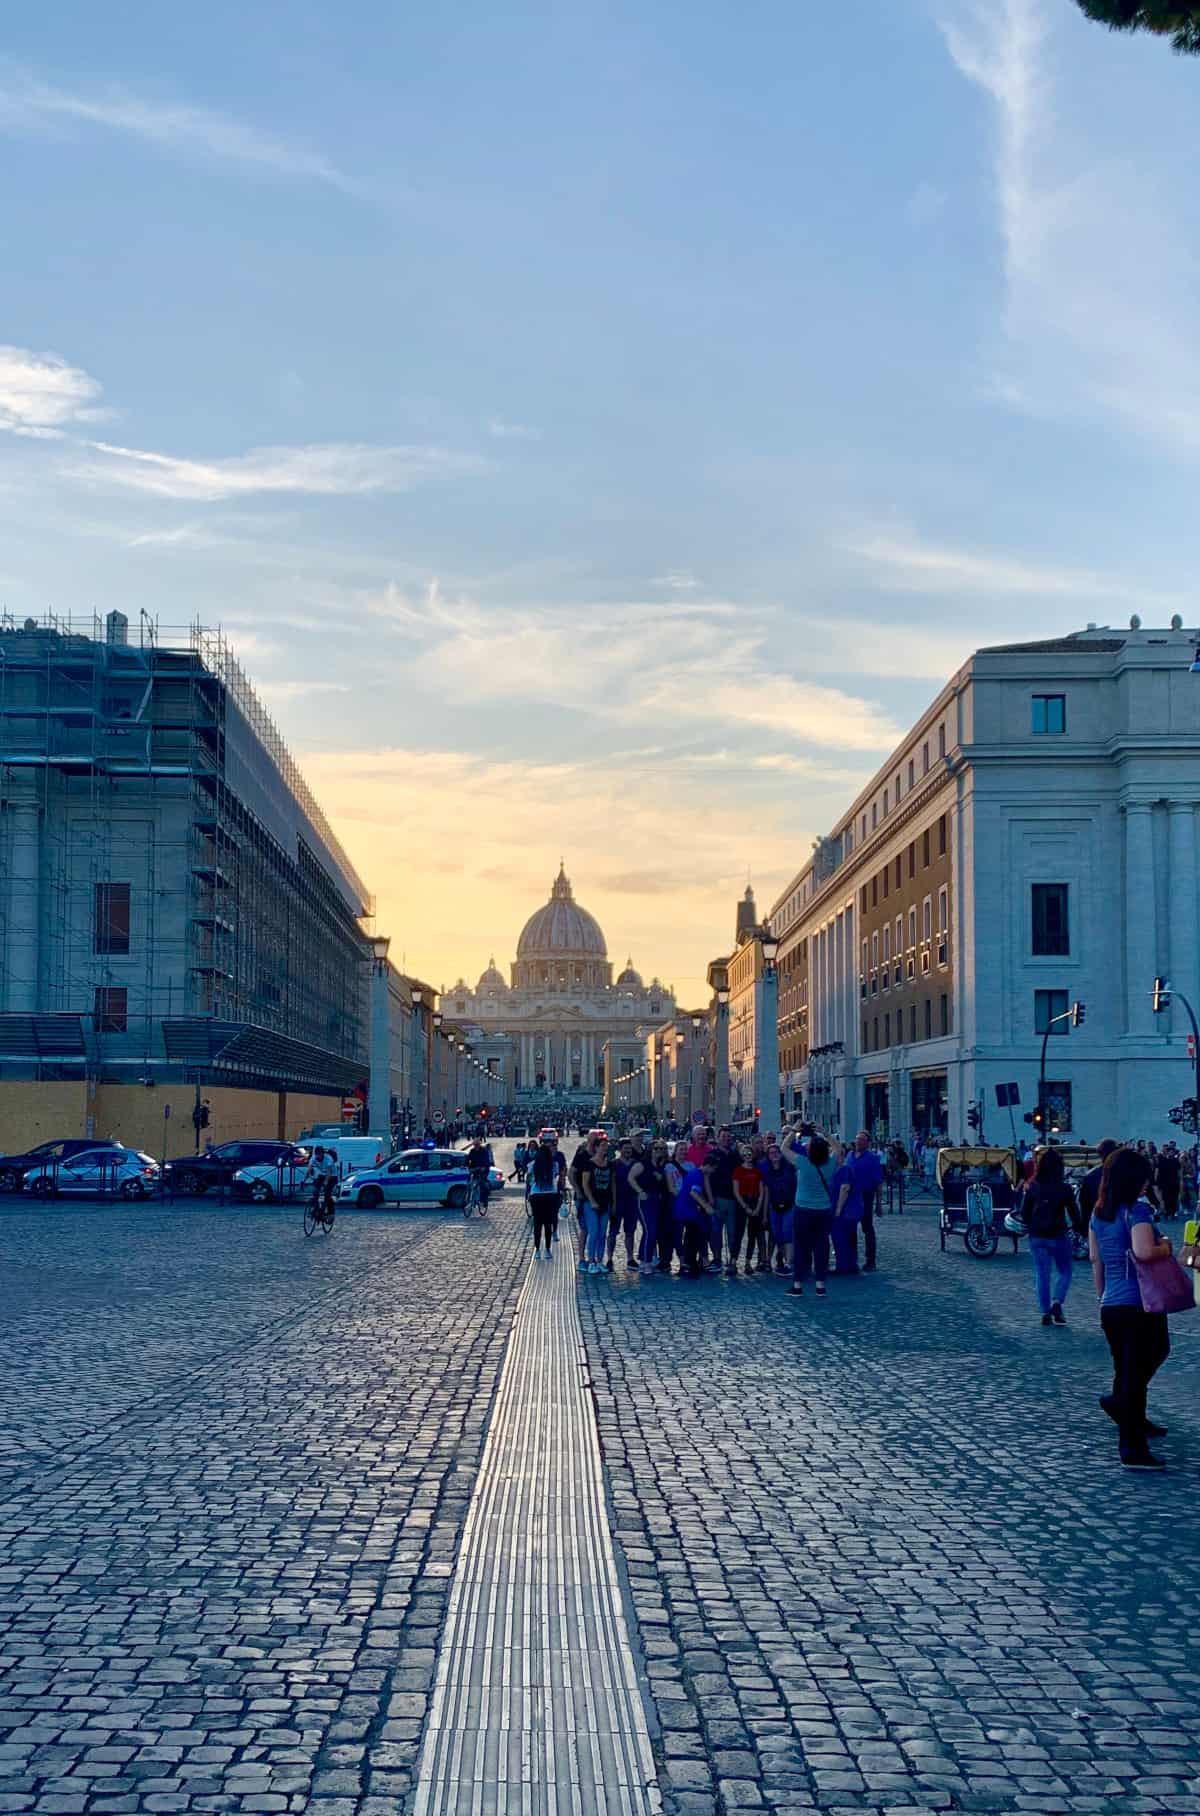 Head toward St. Peter's at sunset...the best photo spots in Rome